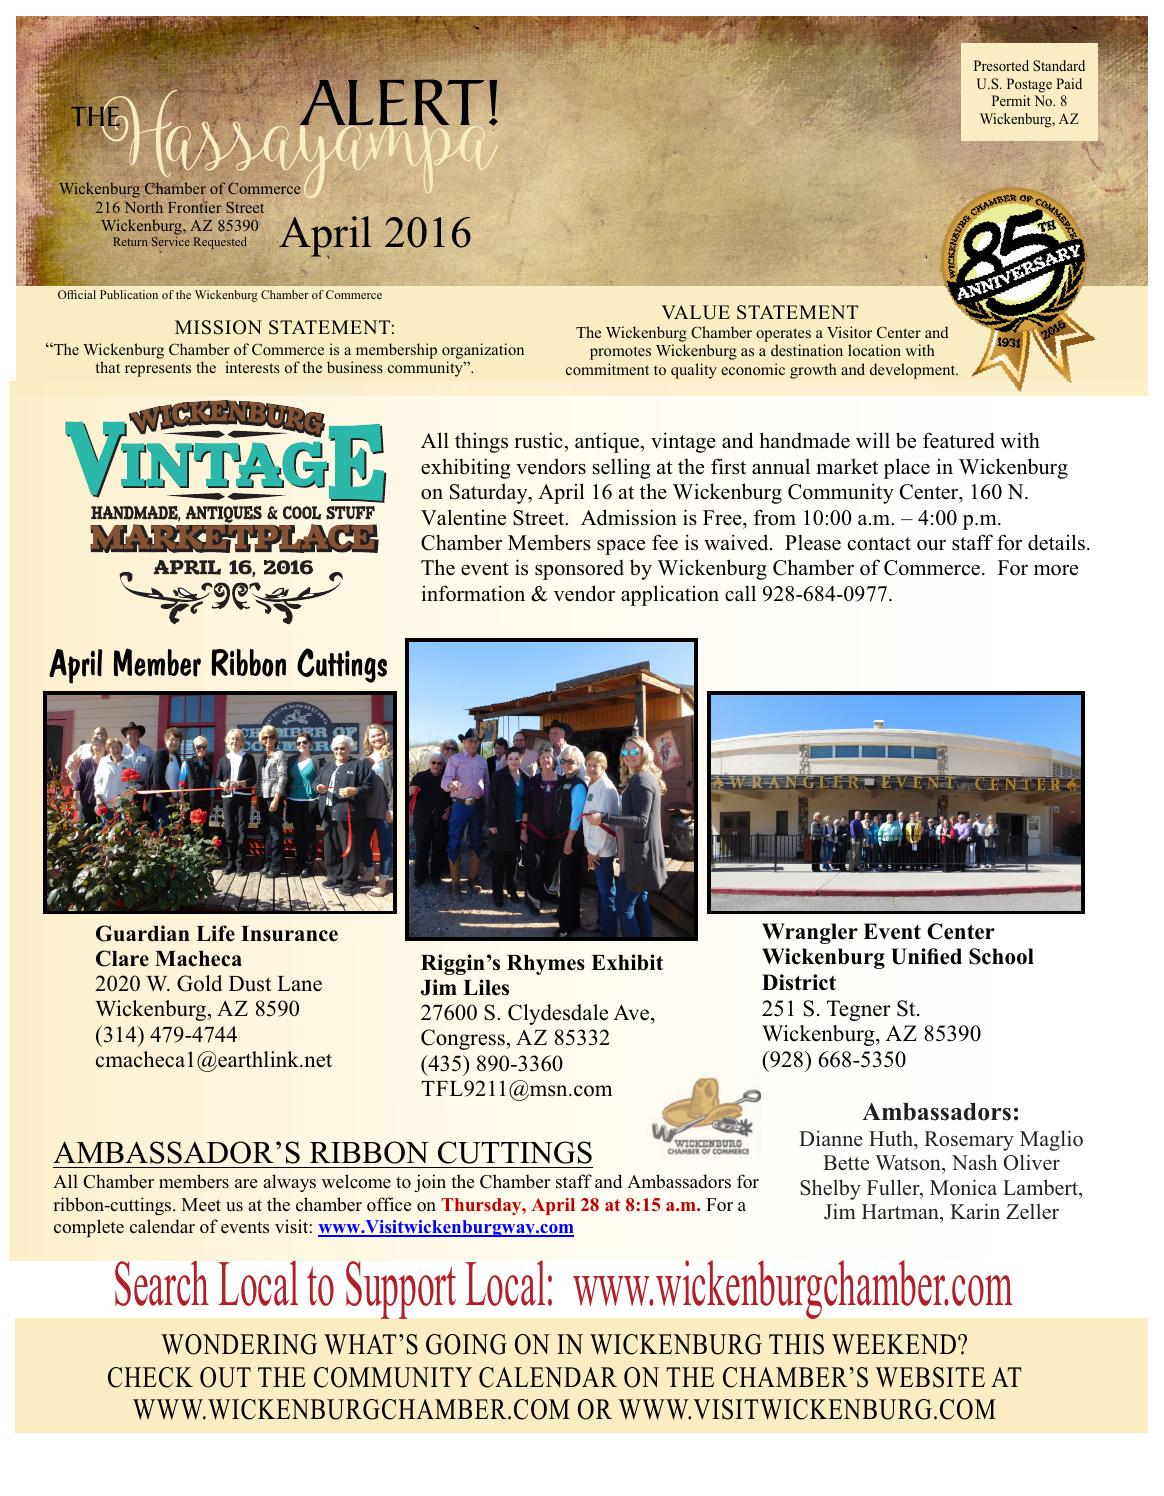 Hassayampa Alert April 2016 By Wickenburg Chamber Of Commerce